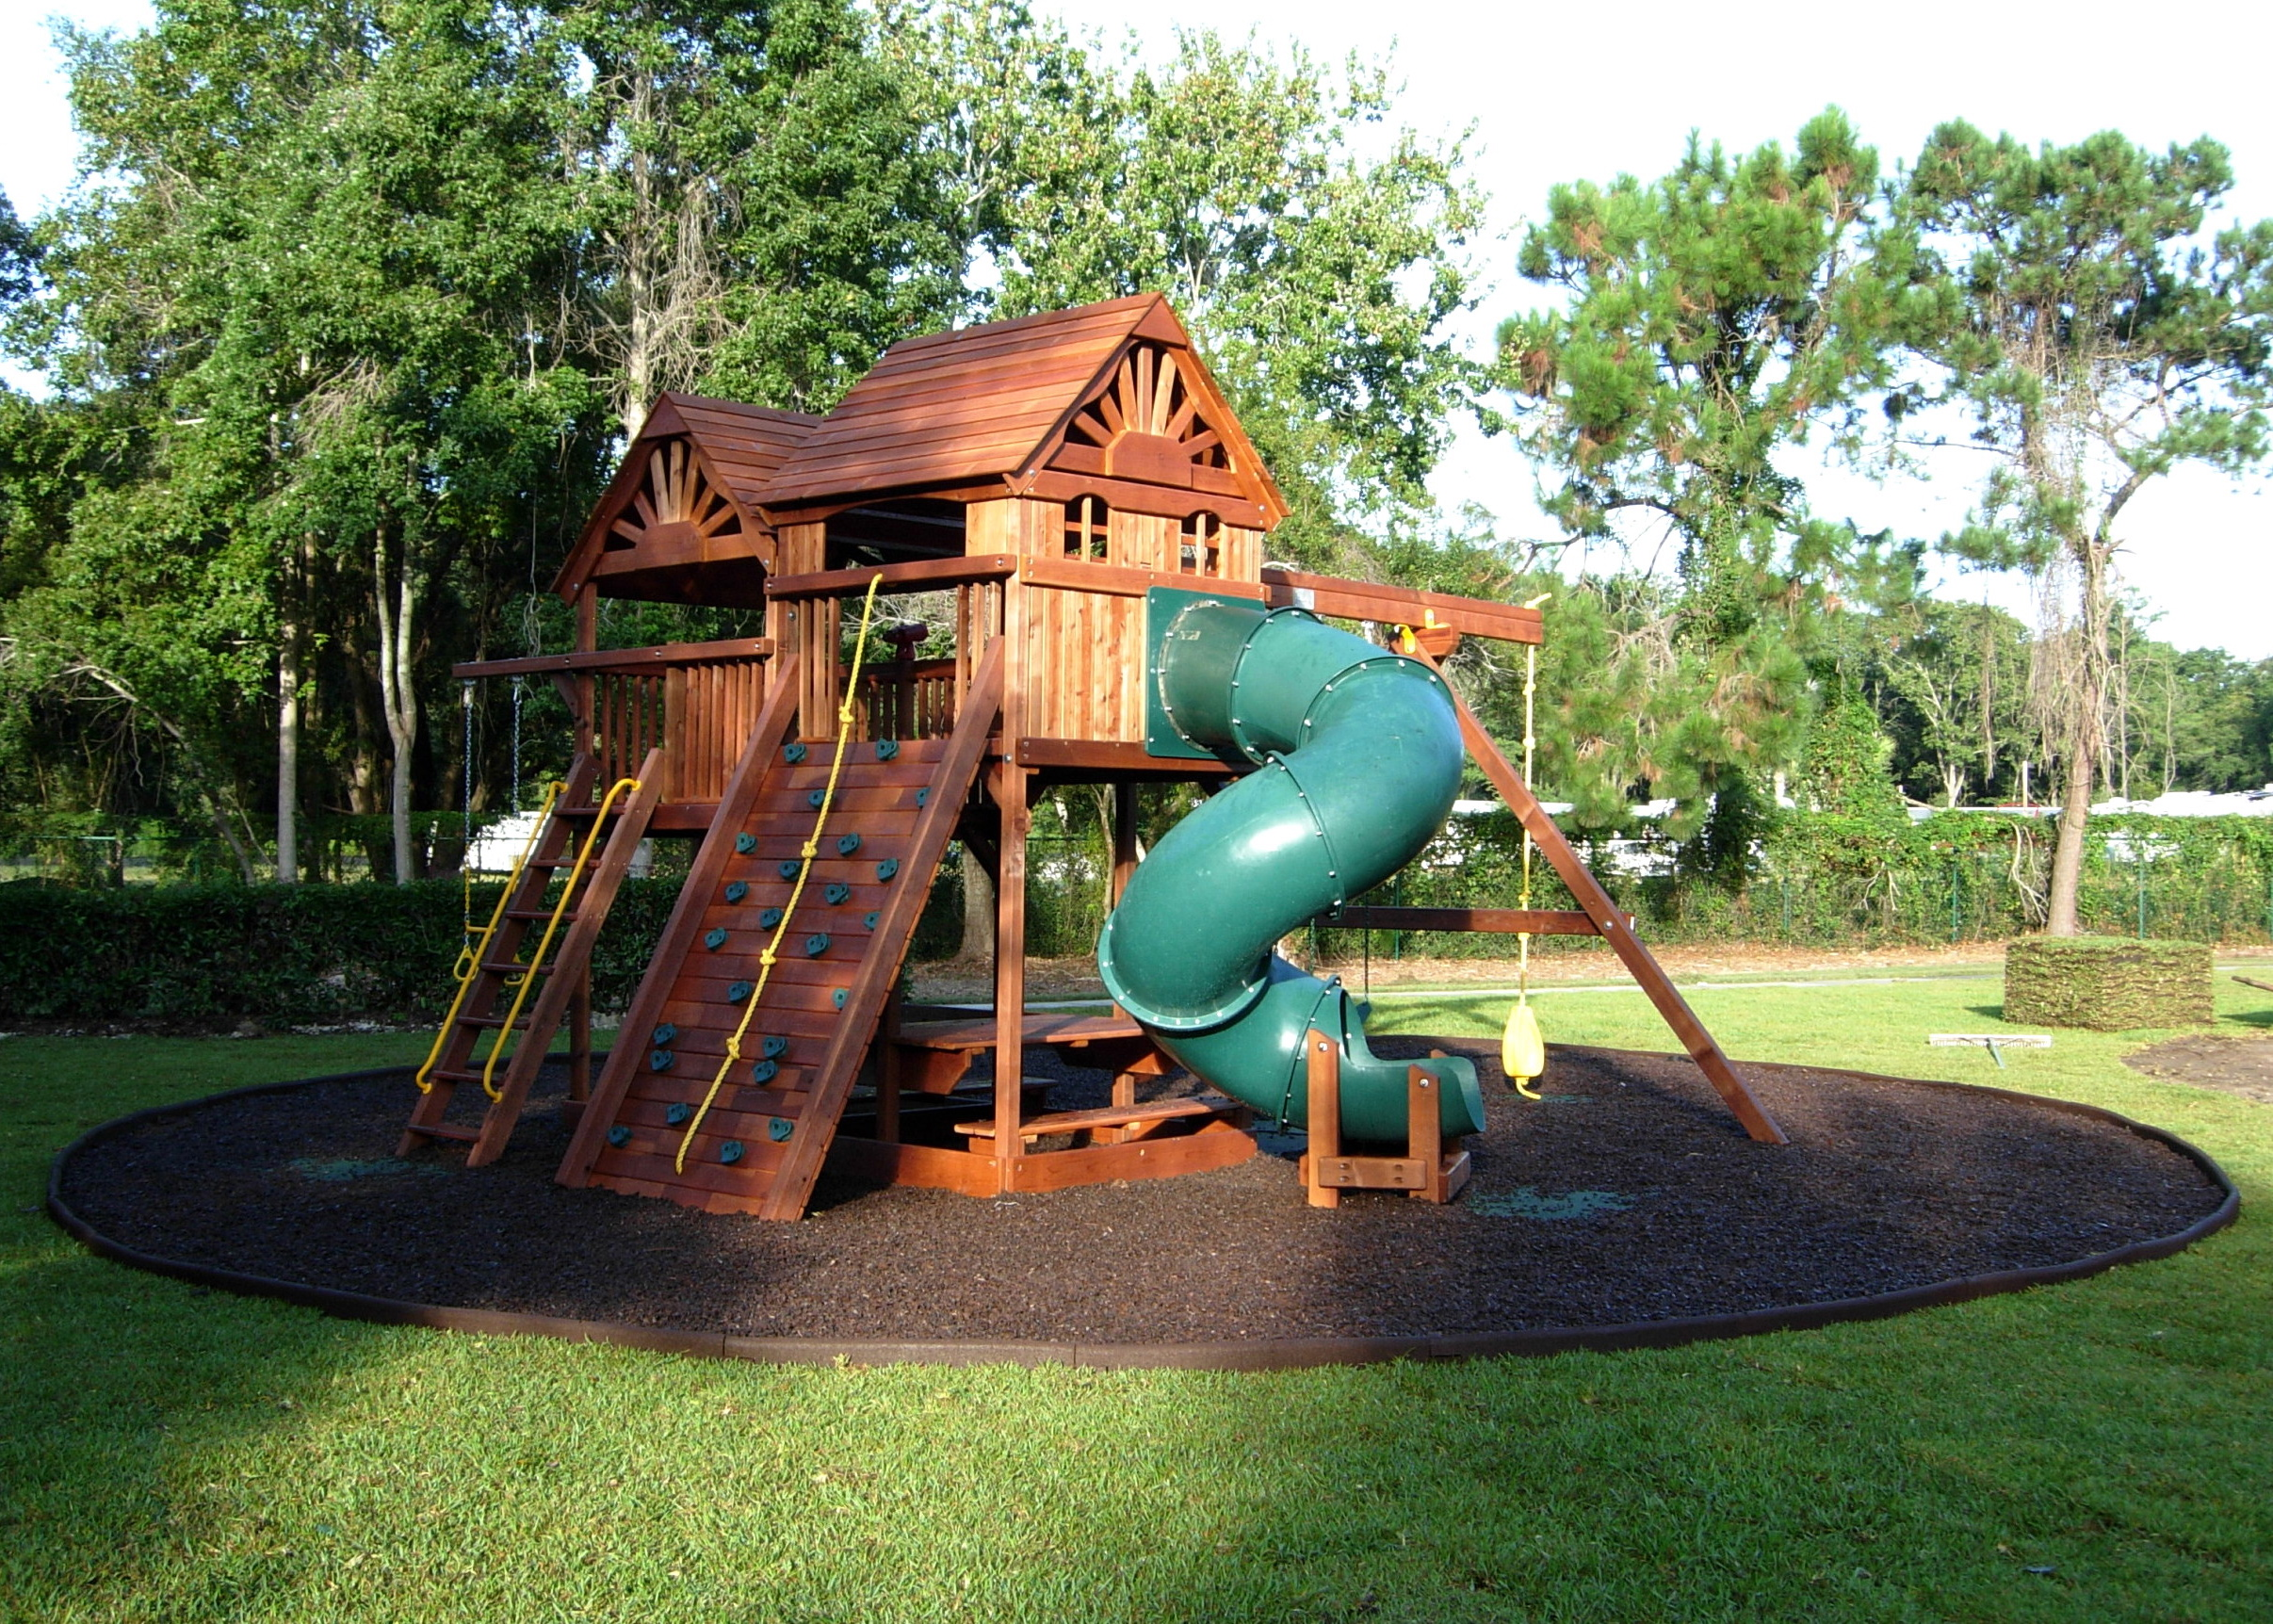 Dog Backyard Playground Ideas :  MULCH IN BULK  Rubber Mulch, Playground Rubber Mulch, Rubber Borders